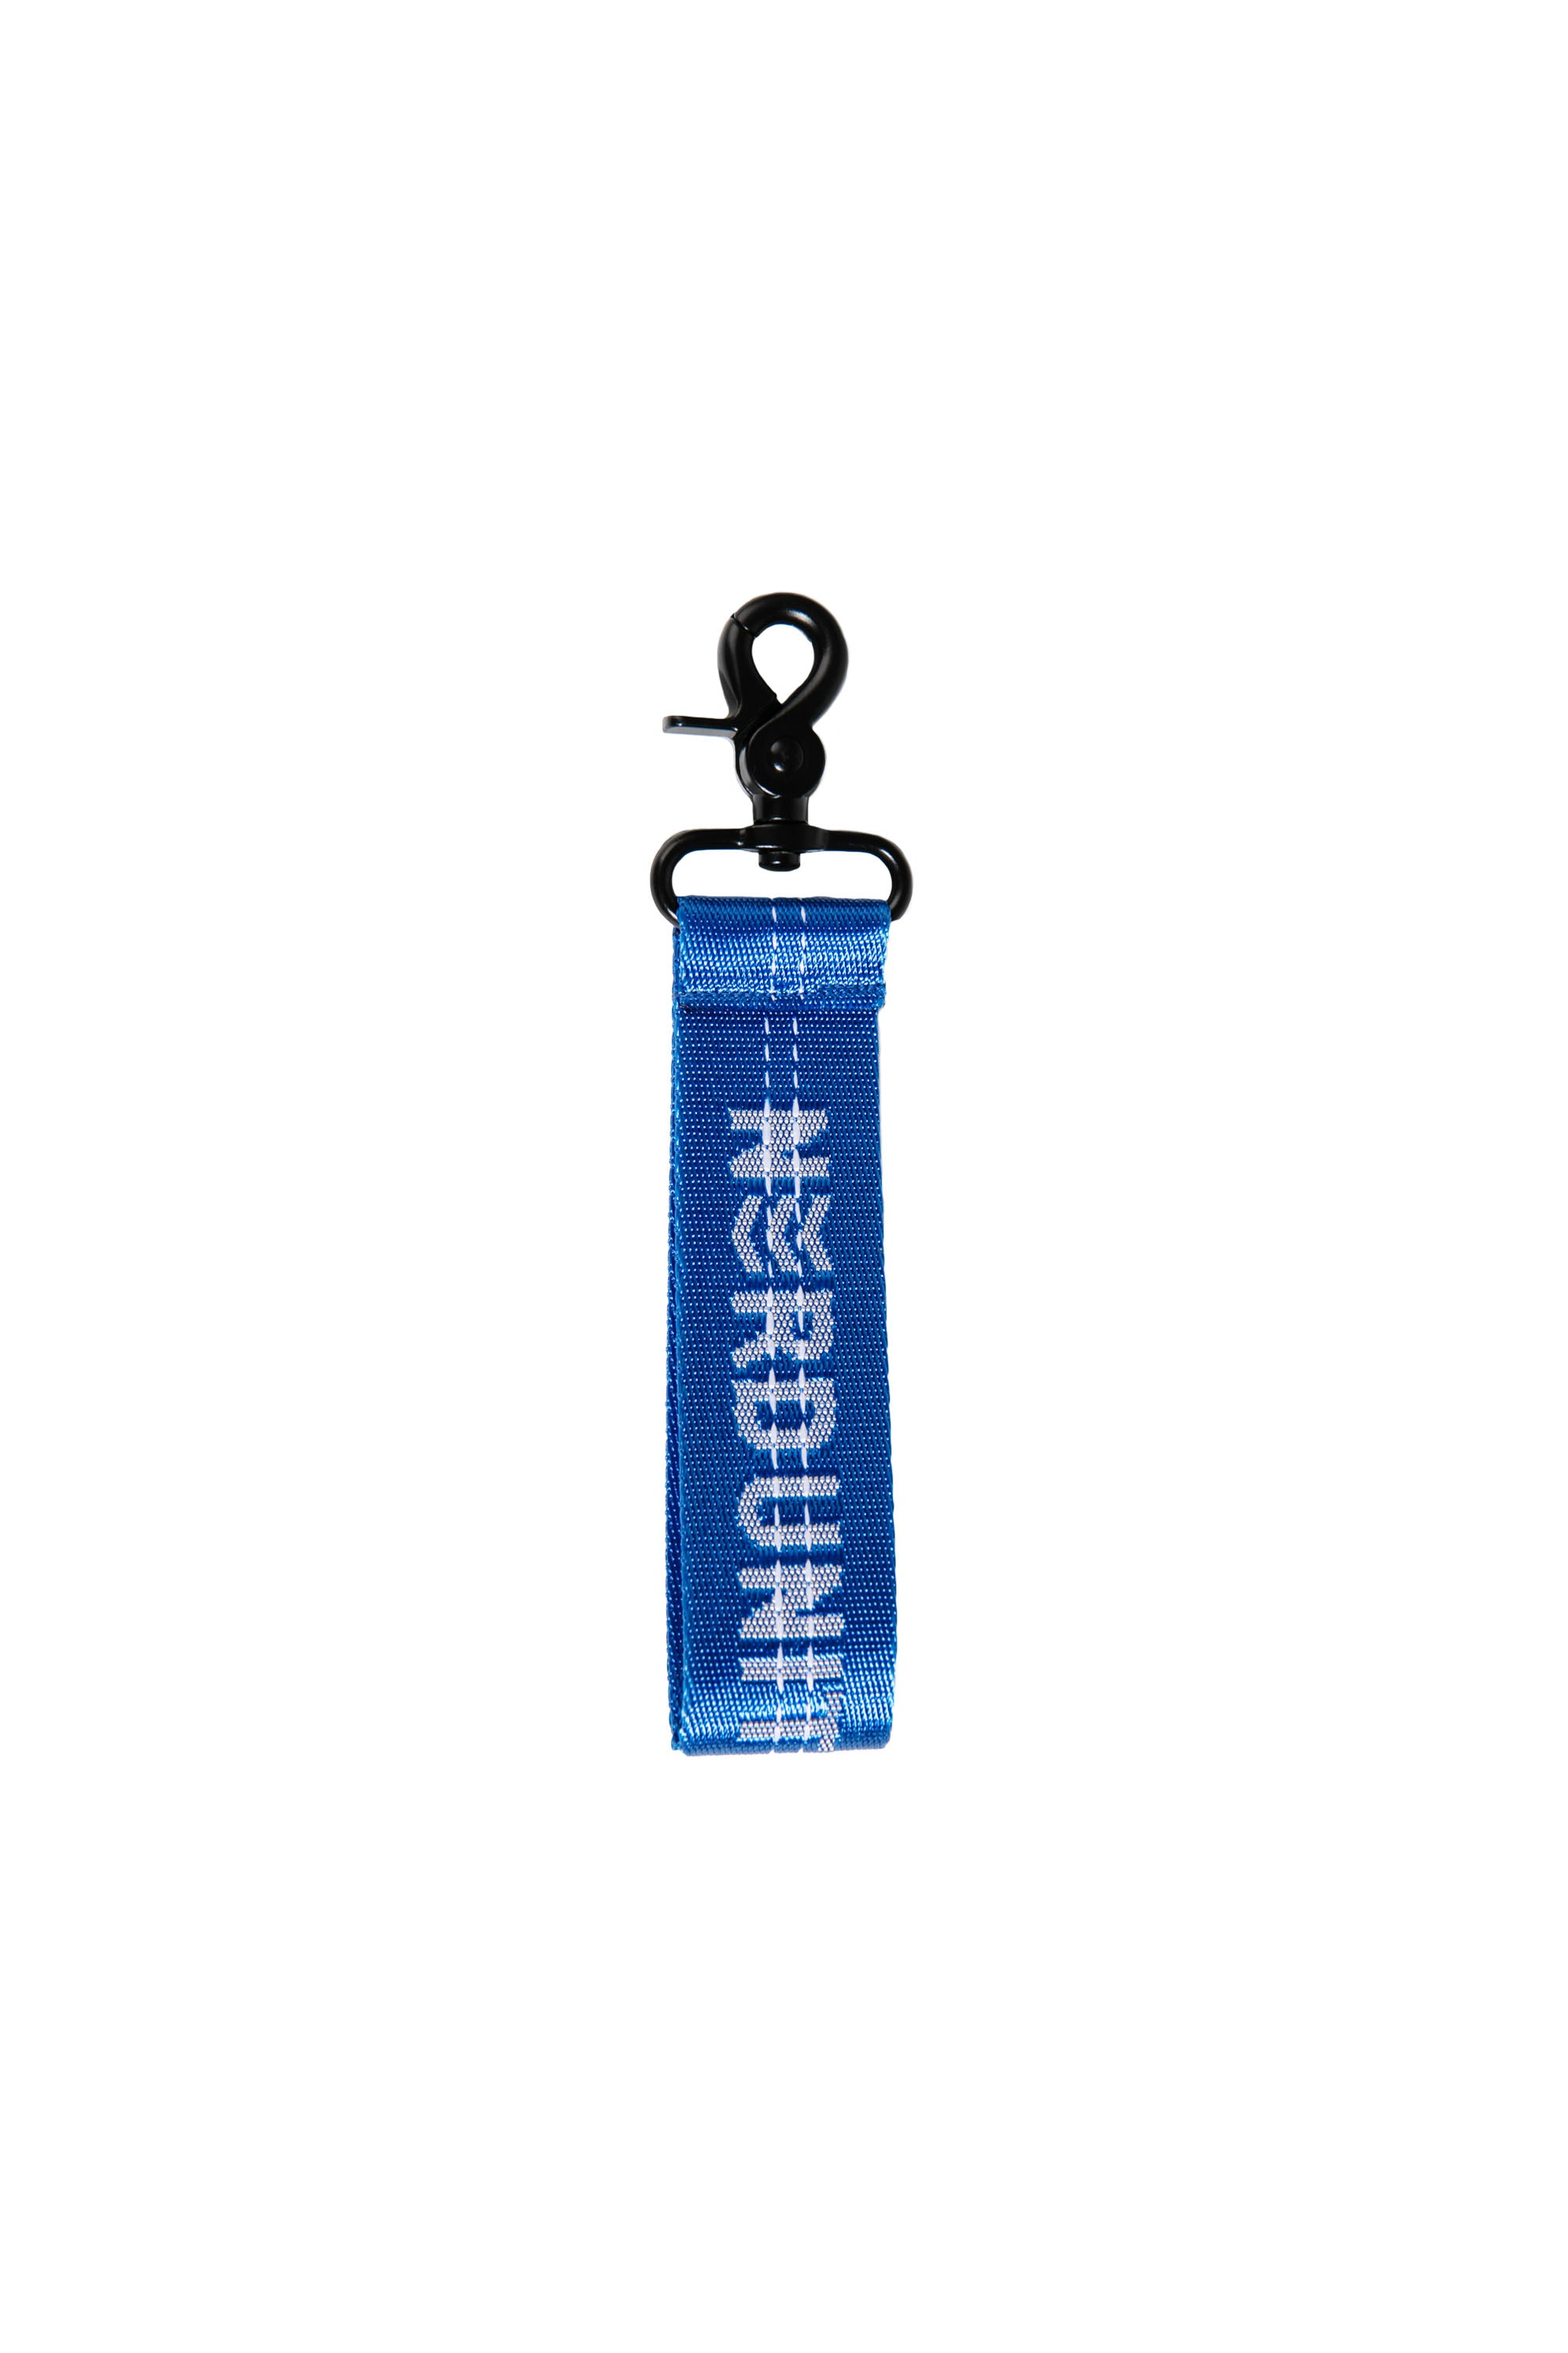 NERDUNIT KEY HOLDER | BLUE